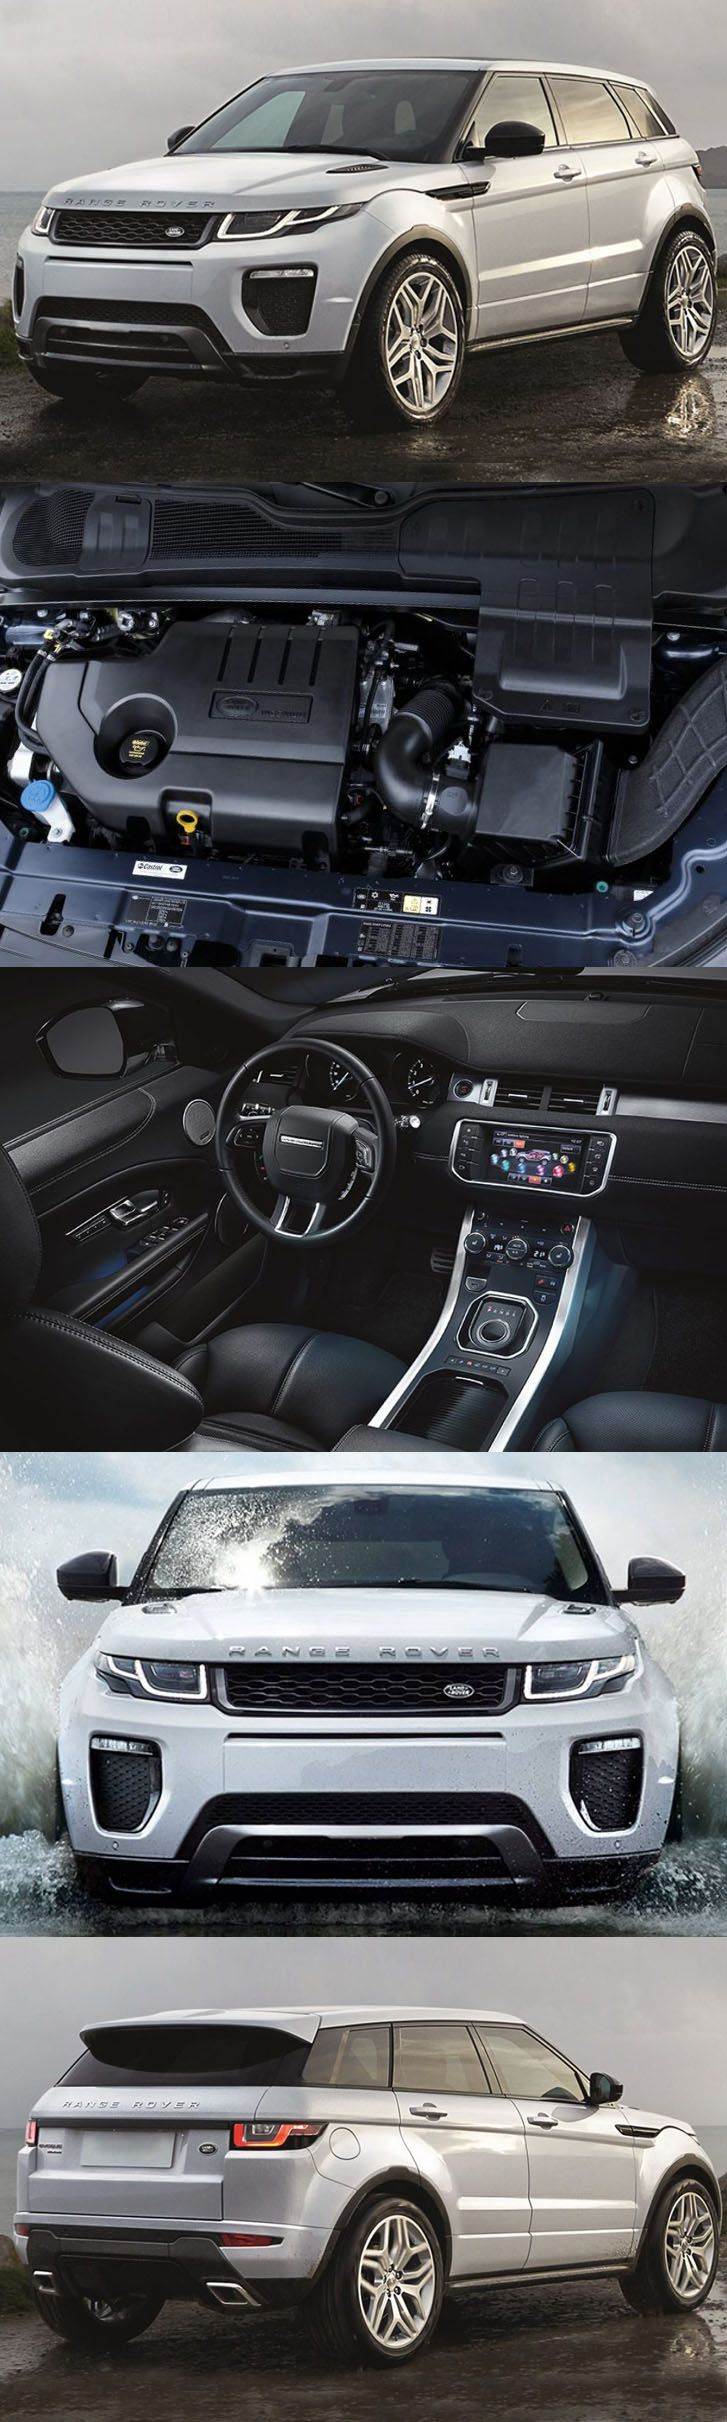 2016 #RANGEROVER #EVOQUE – LET'S GET #DIRTY For more detail:http://www.rangerovergearbox.co.uk/blog/2016-range-rover-evoque-lets-get-dirty/